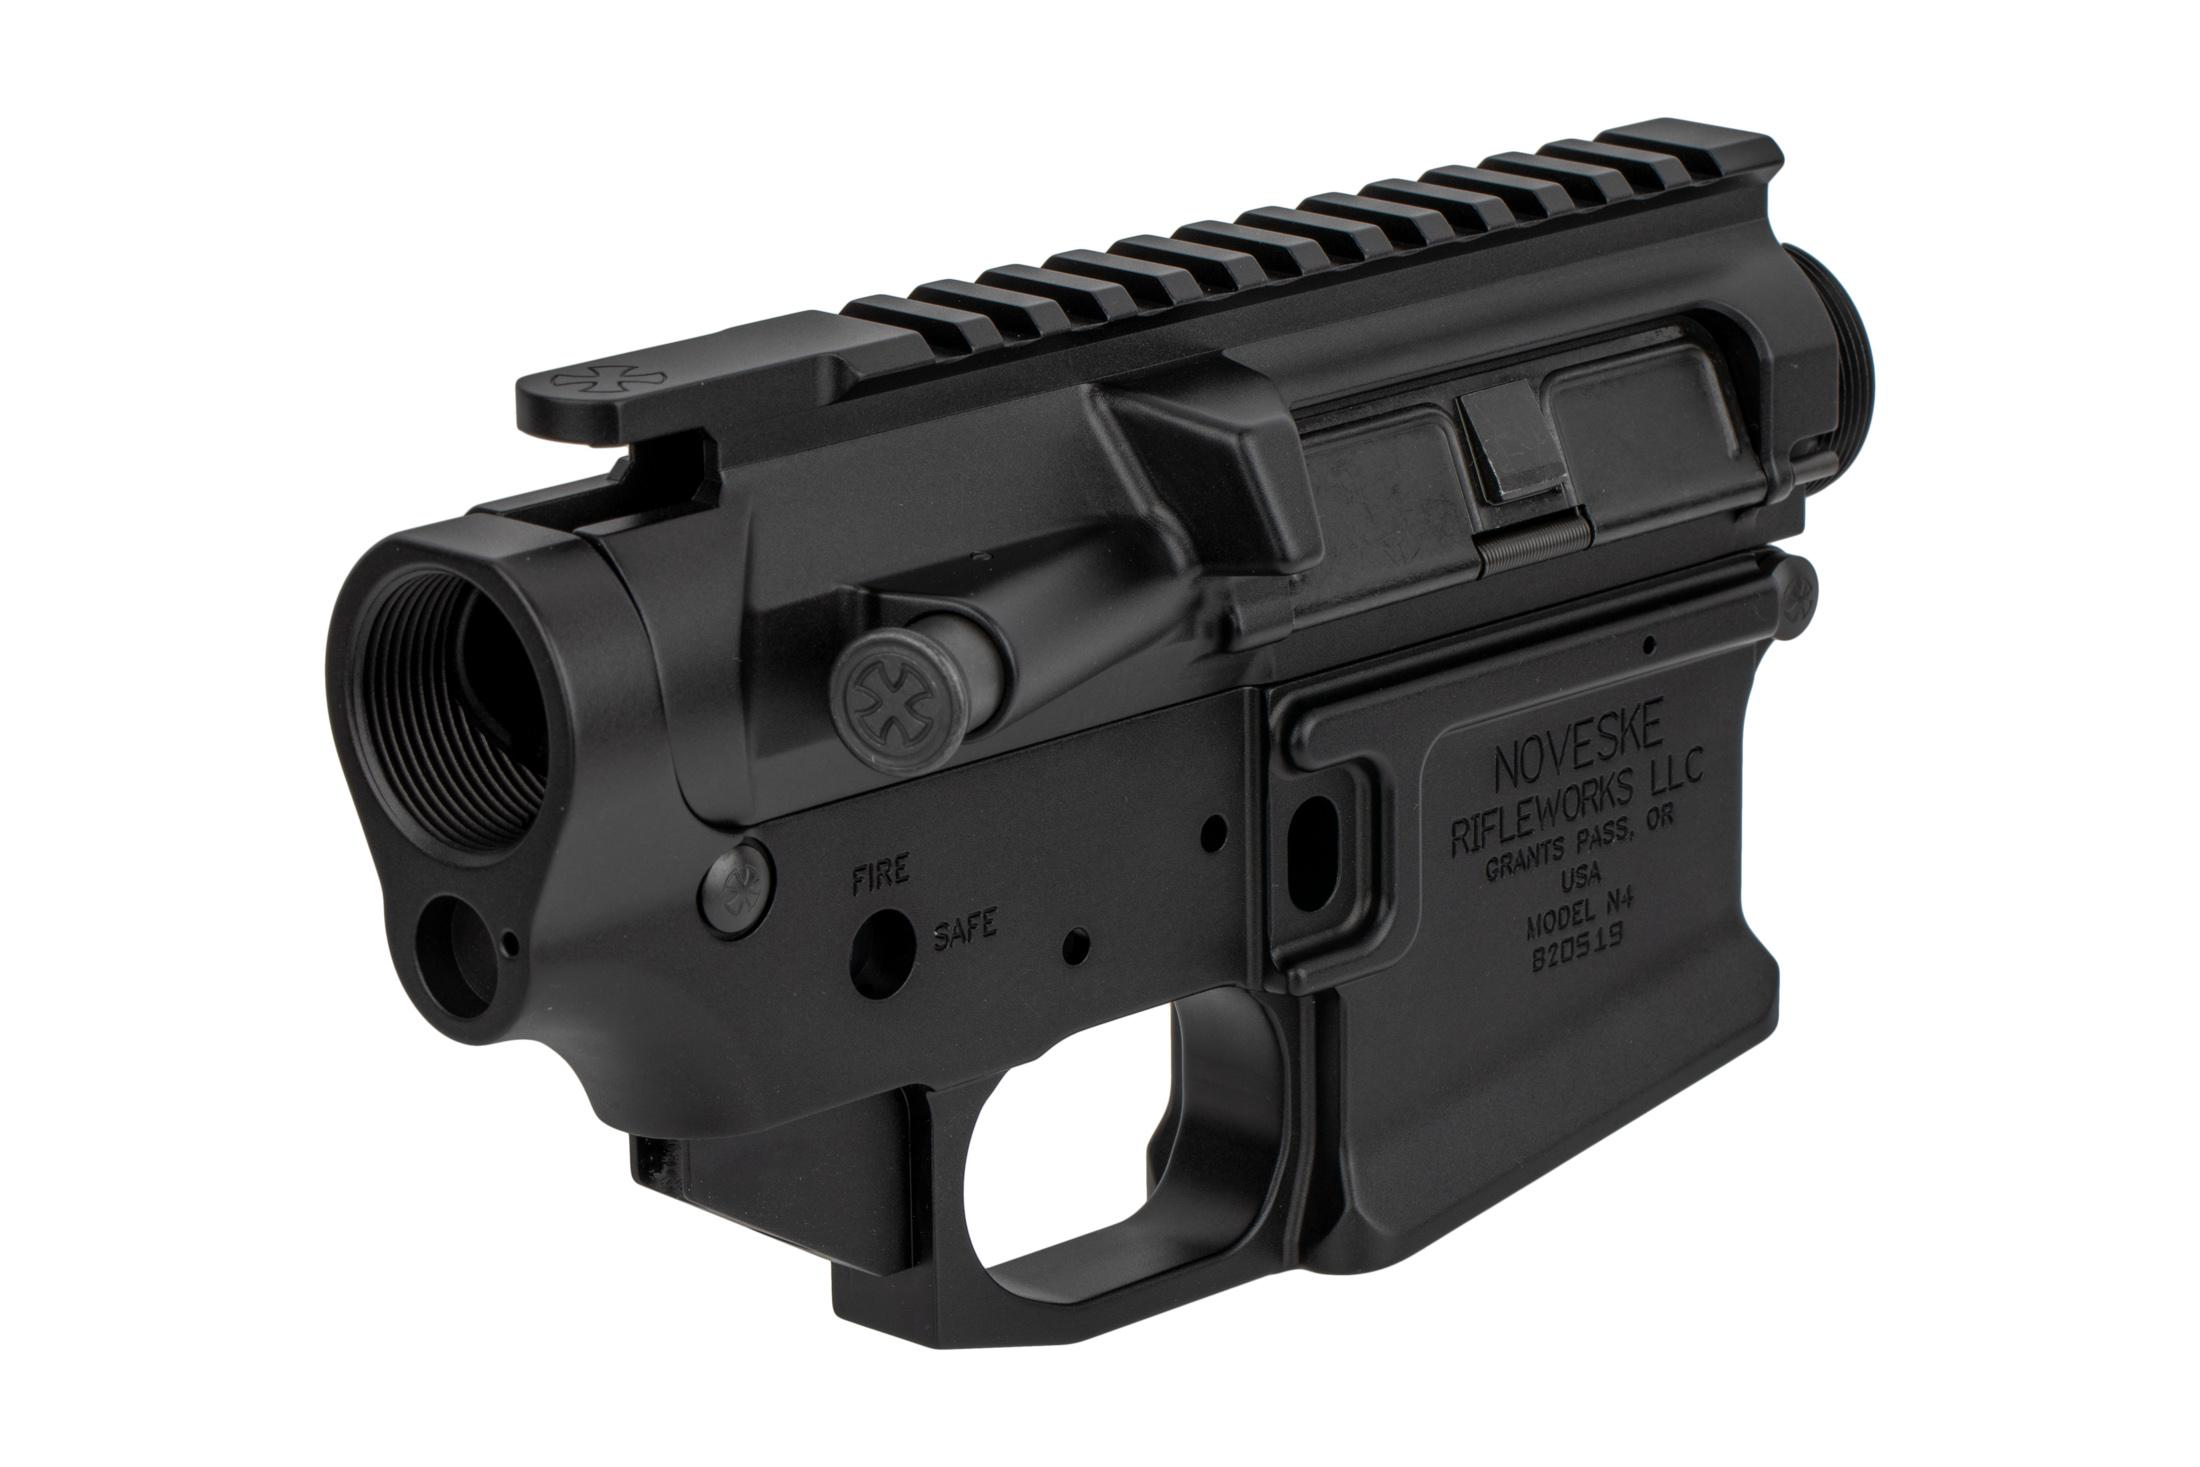 The Noveske Firearms N4 AR15 receiver set is compatible with MilSpec components